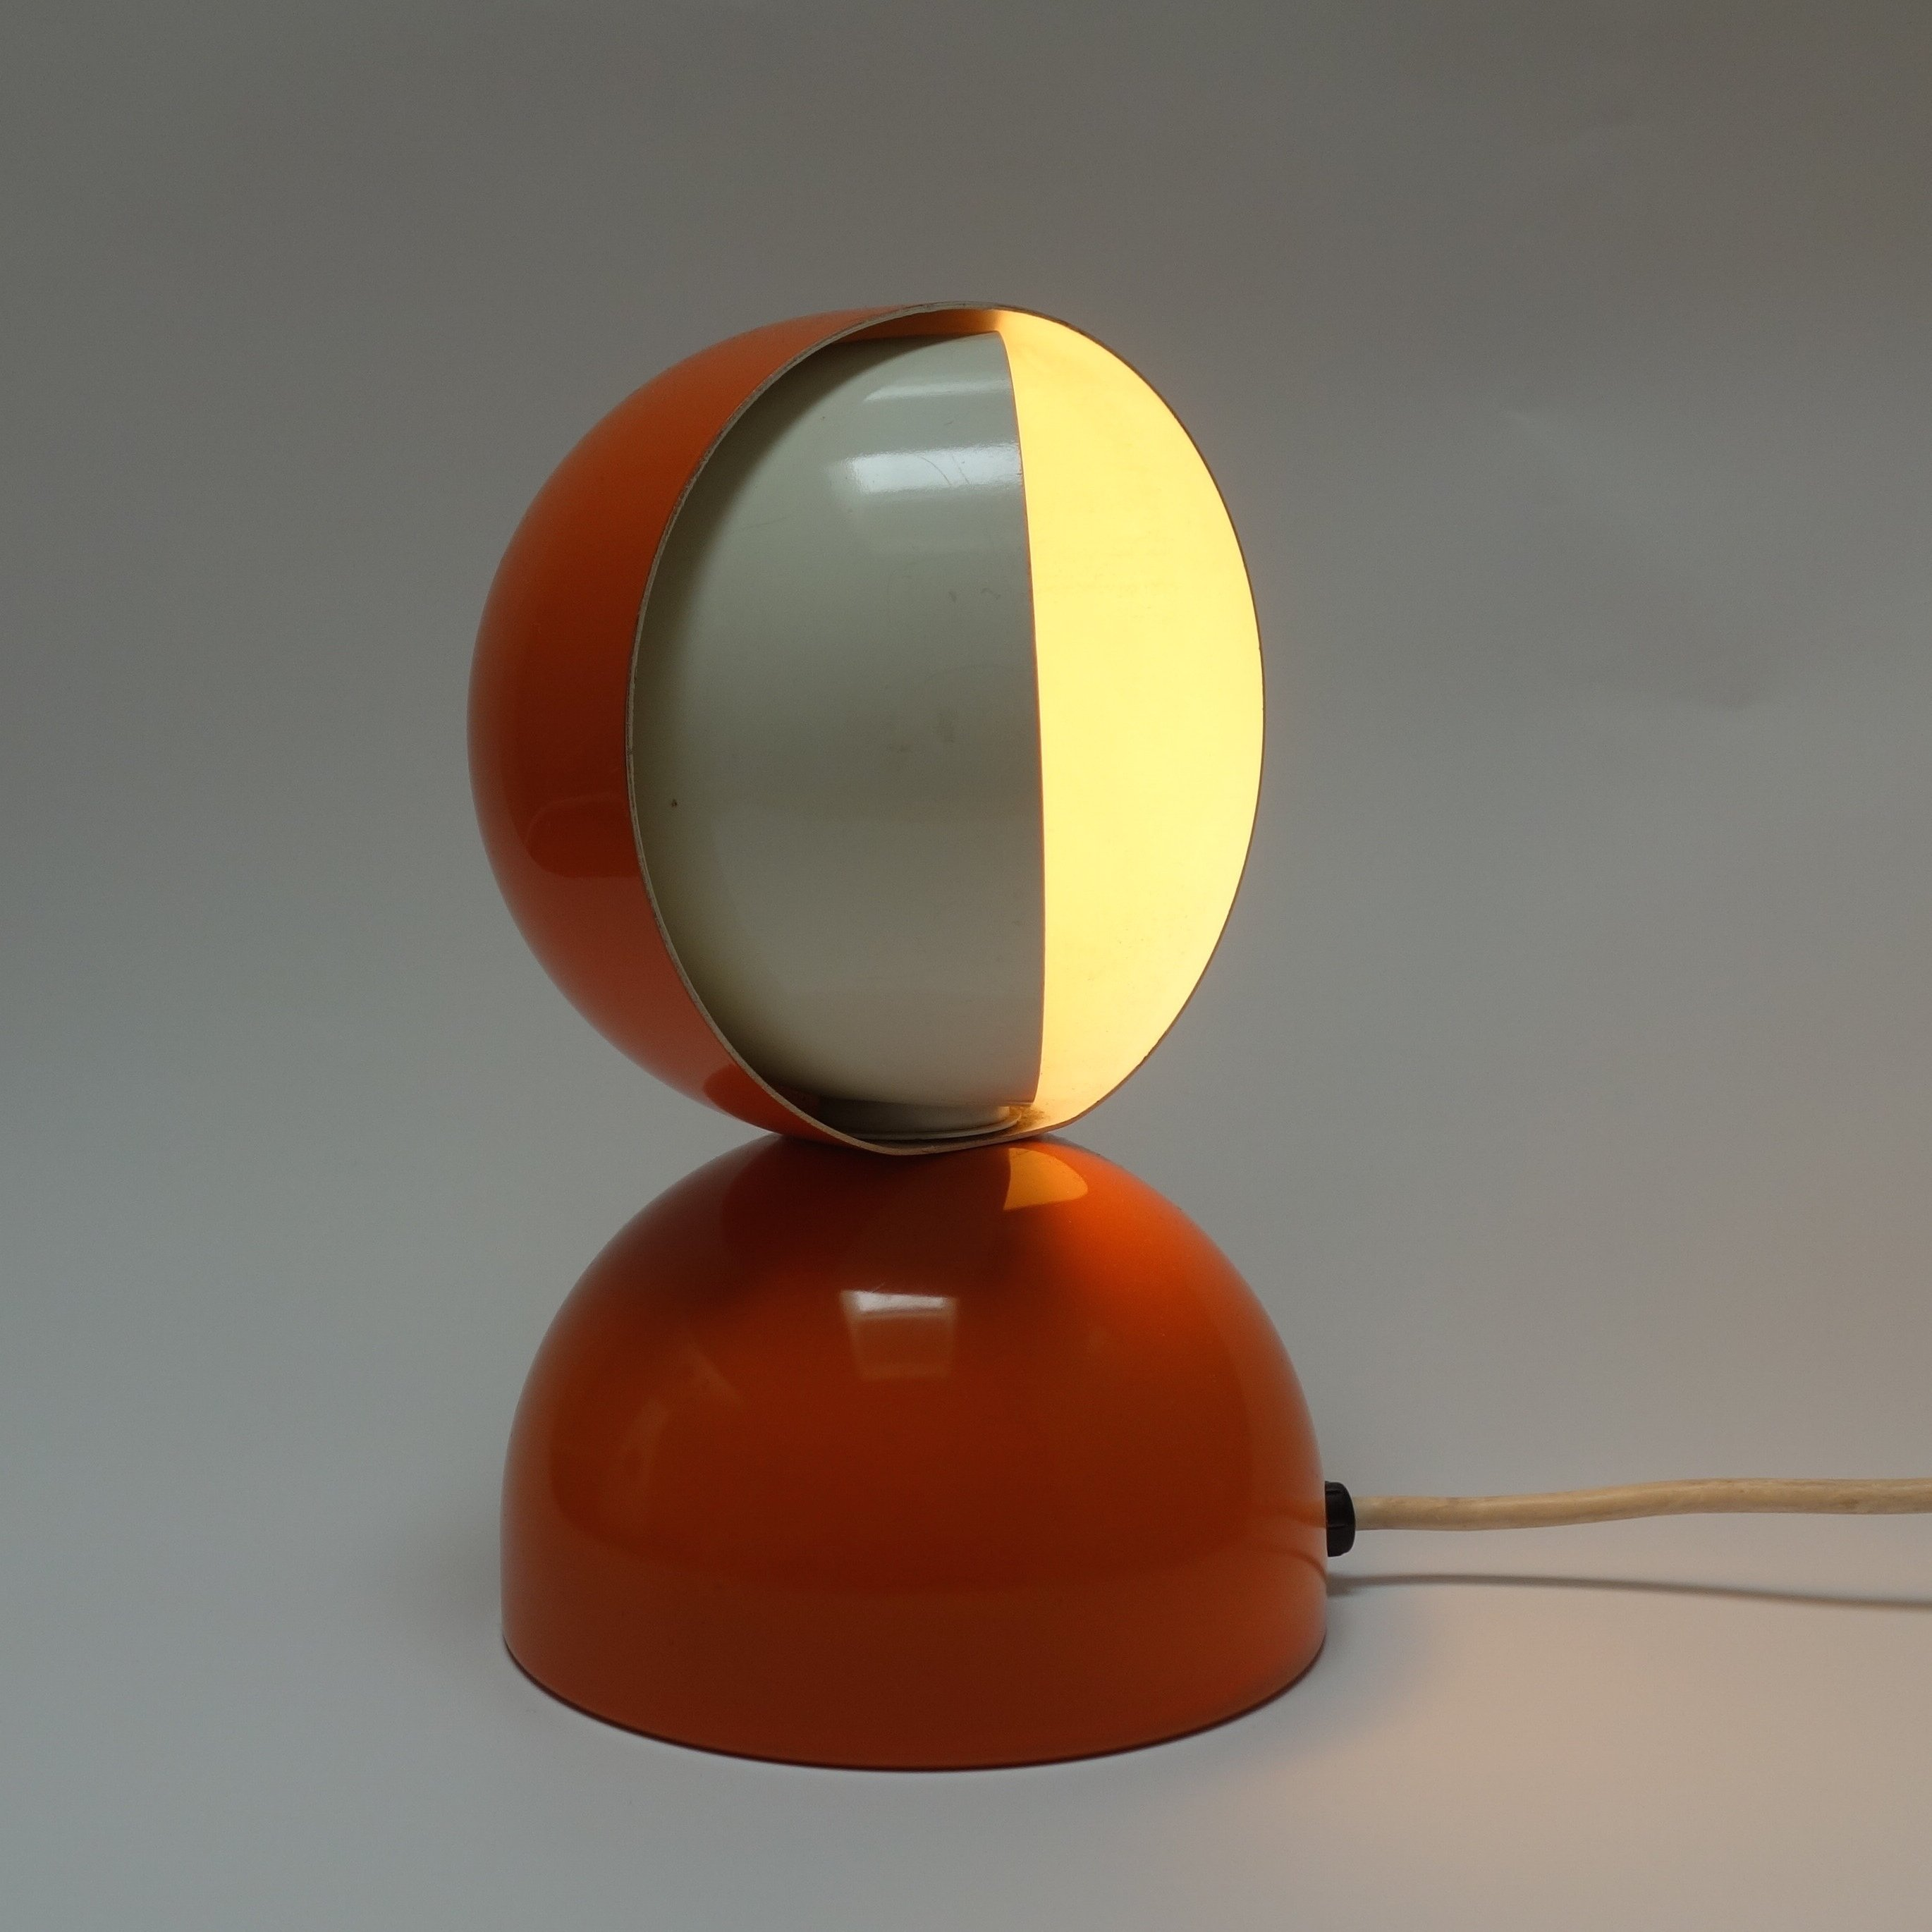 Eclisse desk lamp by vico magistretti for artemide 1960s 78241 eclisse desk lamp by vico magistretti for artemide 1960s aloadofball Image collections